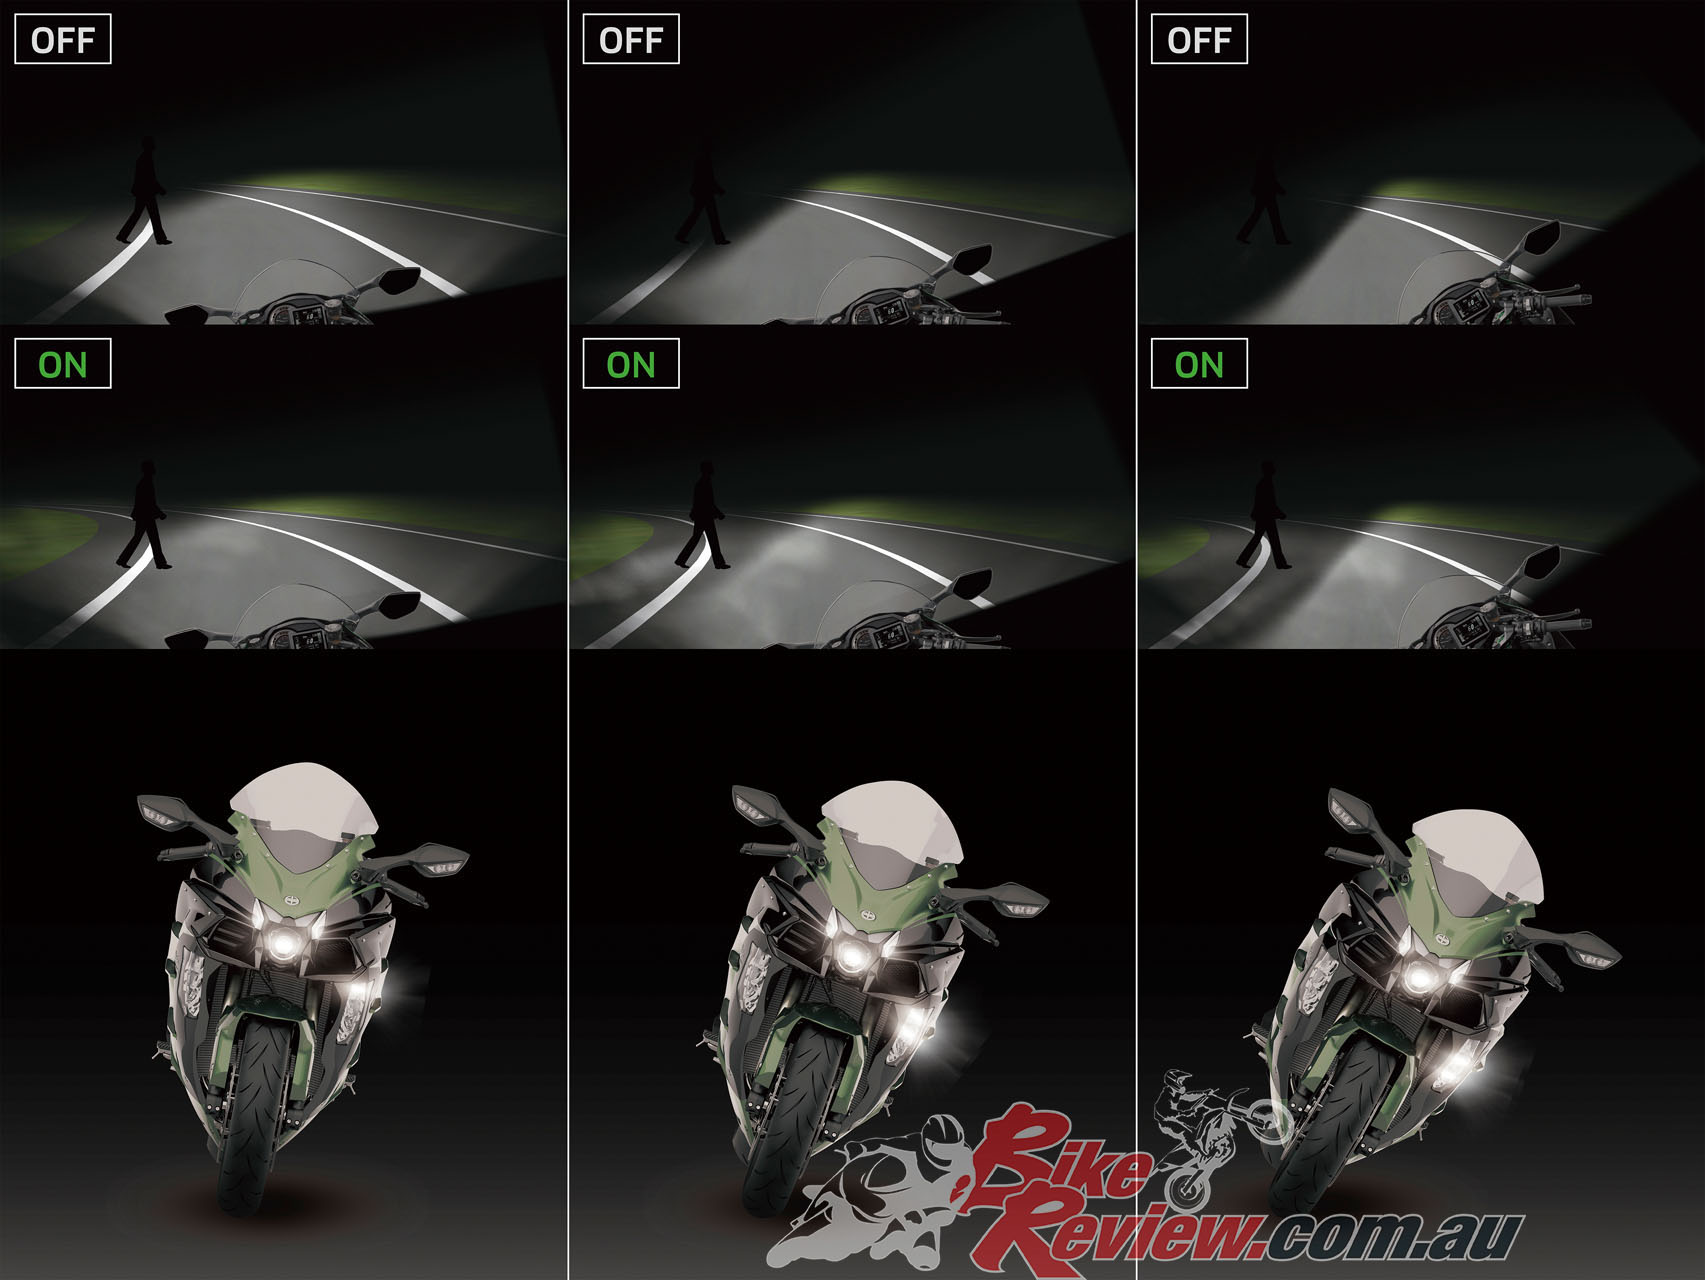 Kawasaki's cornering lights are found on the SE and offer greater cornering directed lighting at higher lean angles